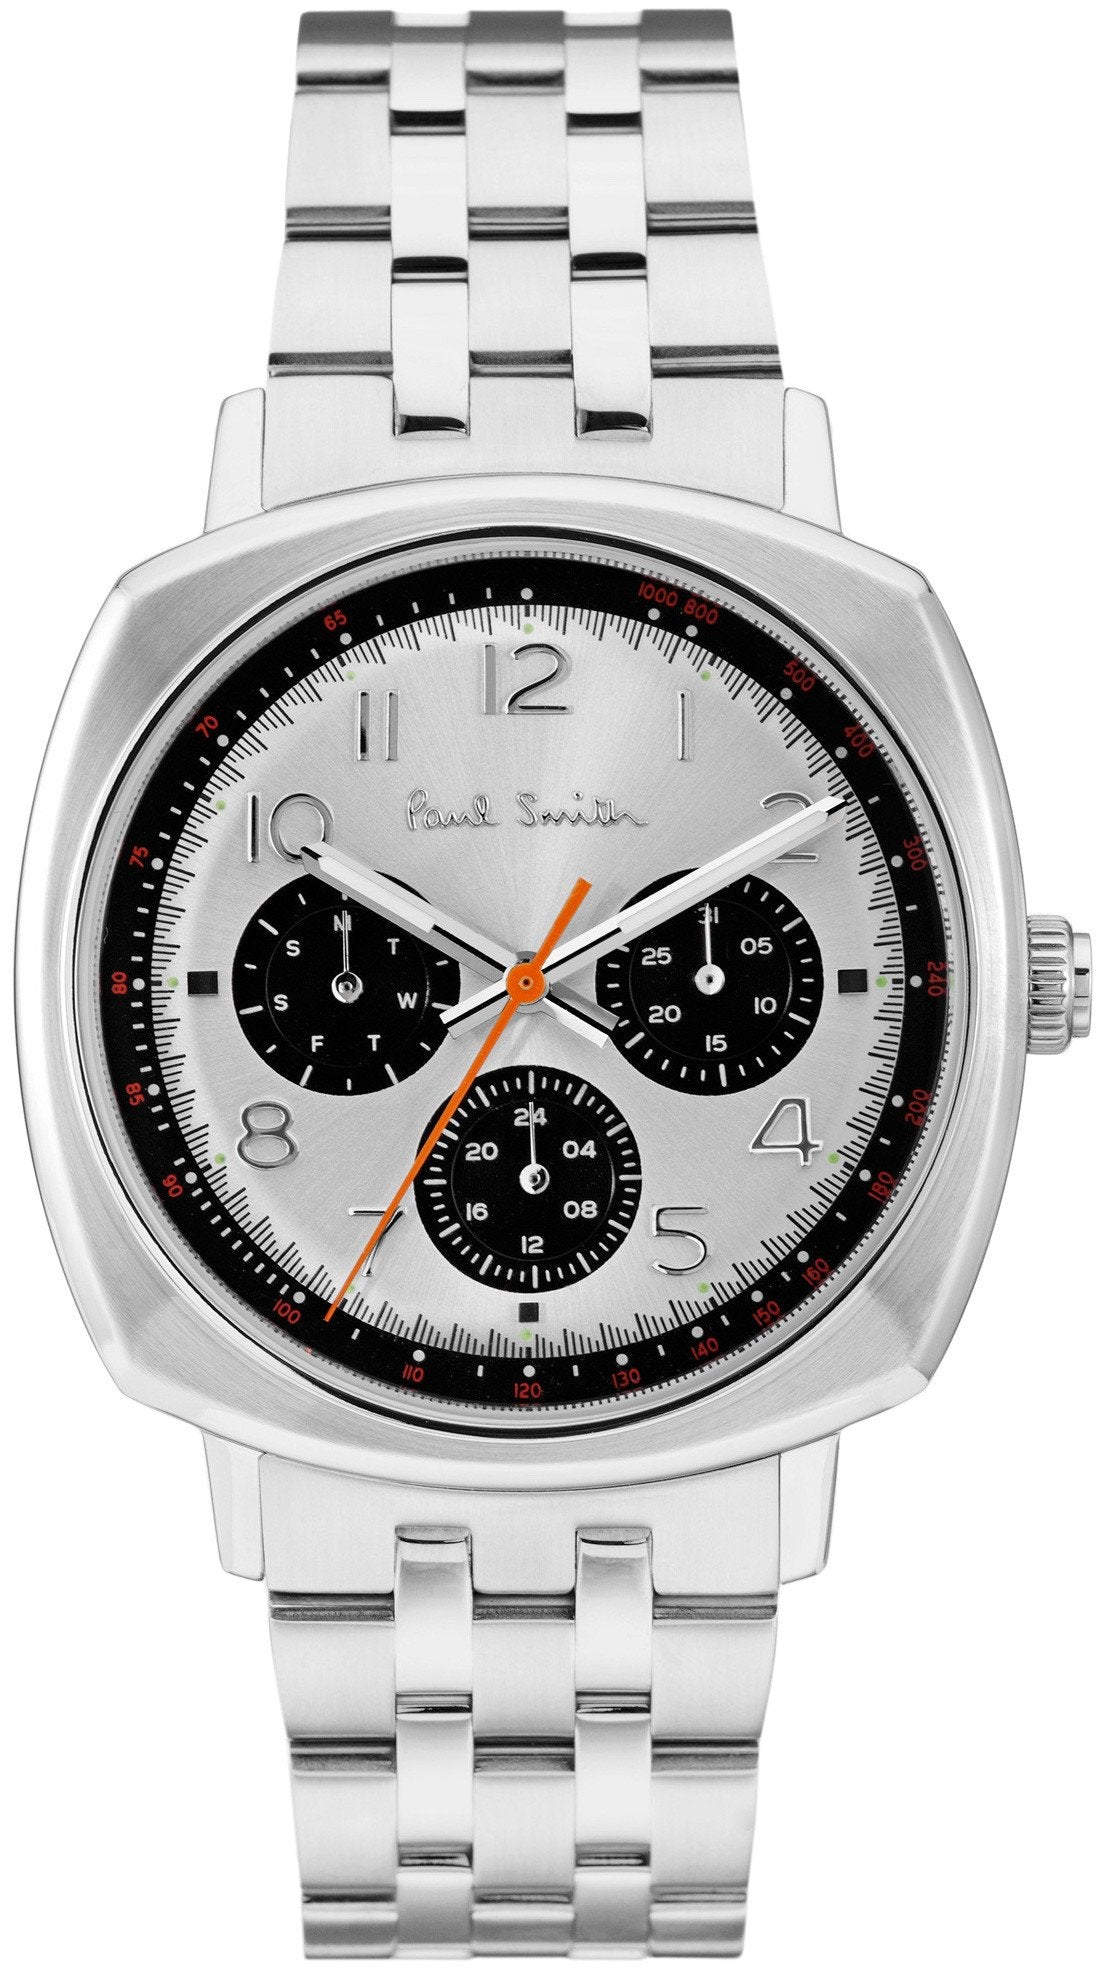 Paul Smith Watch Atomic D